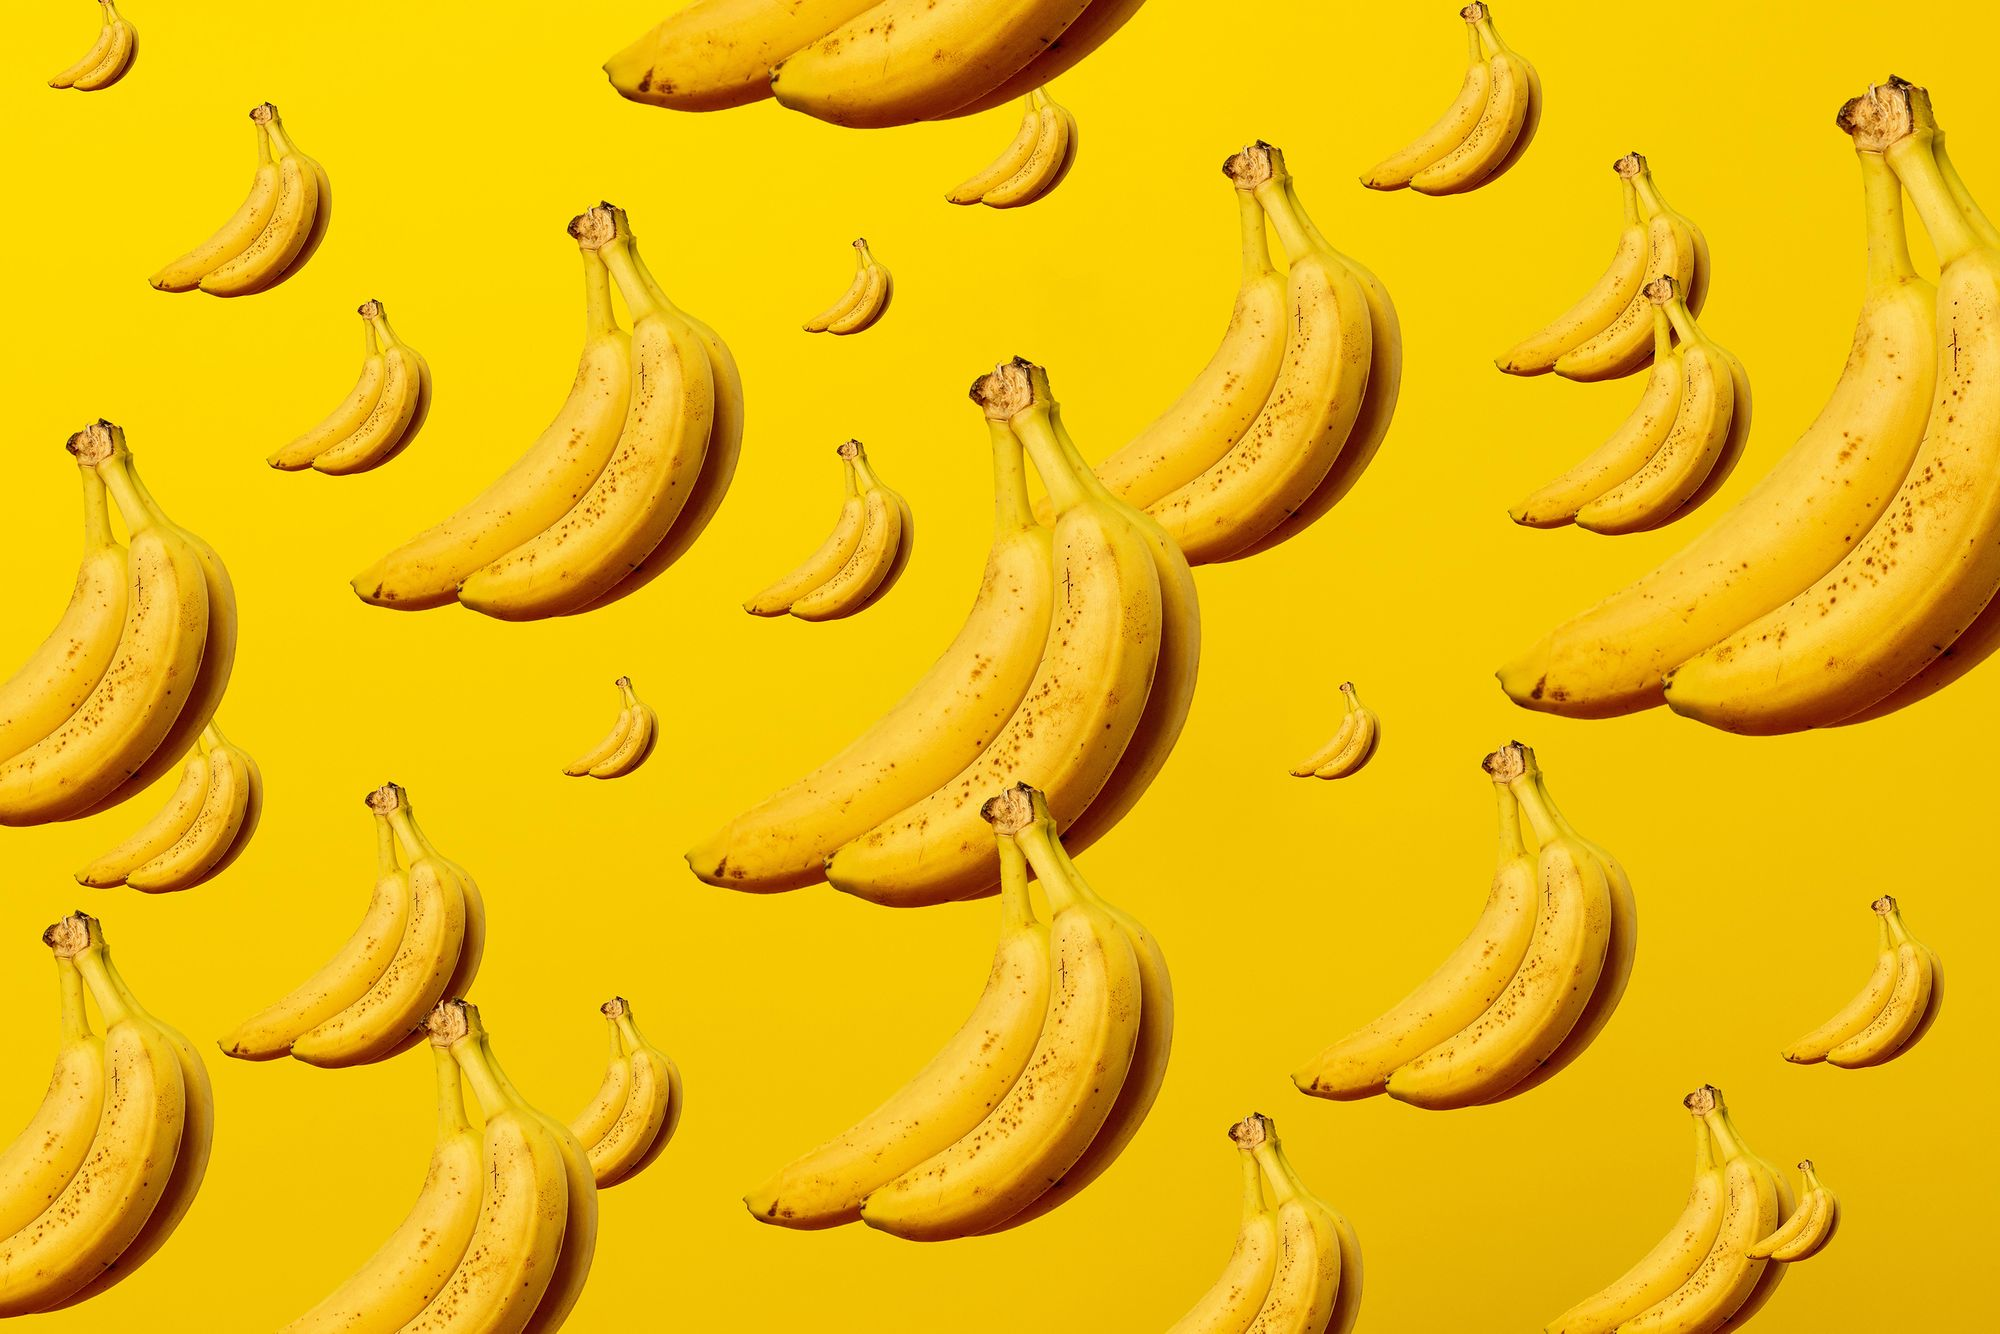 Bananas are great brain foods